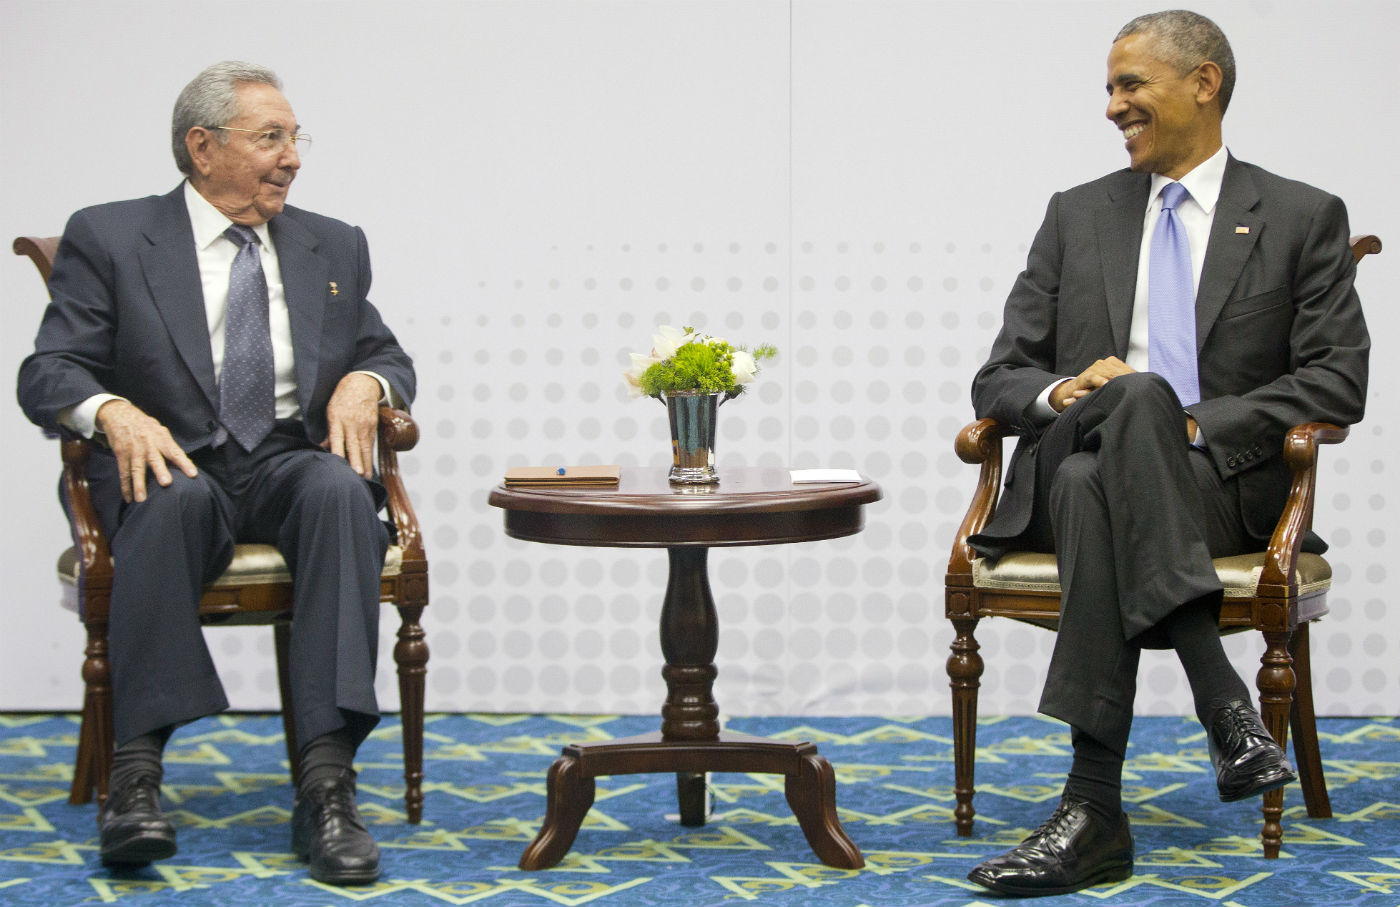 Our-Man-in-Panama-How-Obama's-Summitry-Could-Change-Relations-With-Latin-America